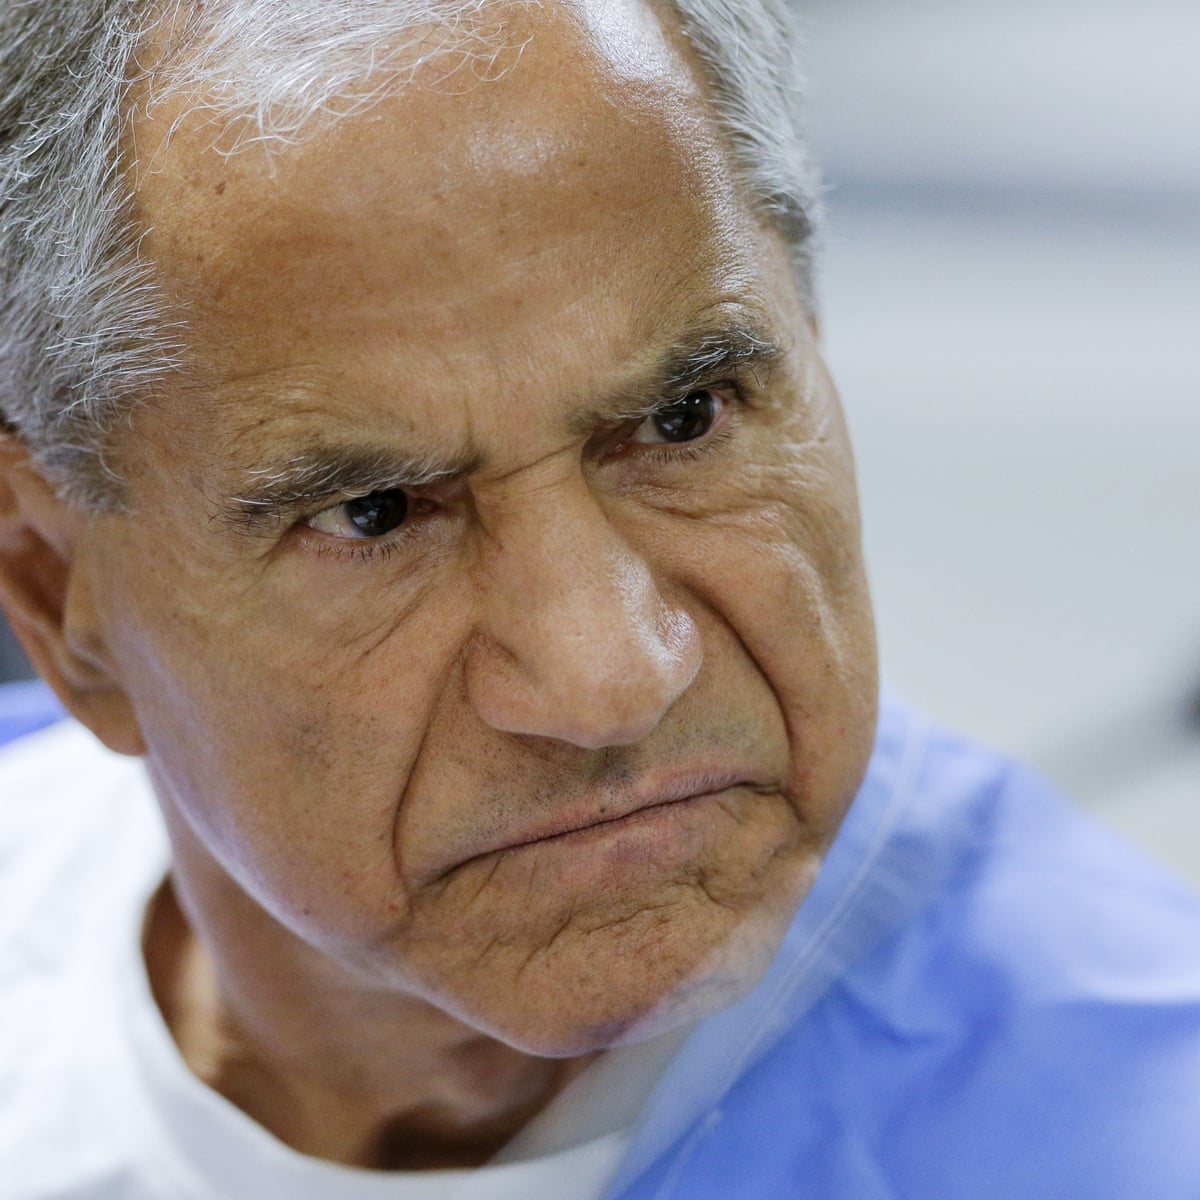 Sirhan Sirhan, the man who shot Robert Kennedy, stable after prison  stabbing   Robert Kennedy   The Guardian